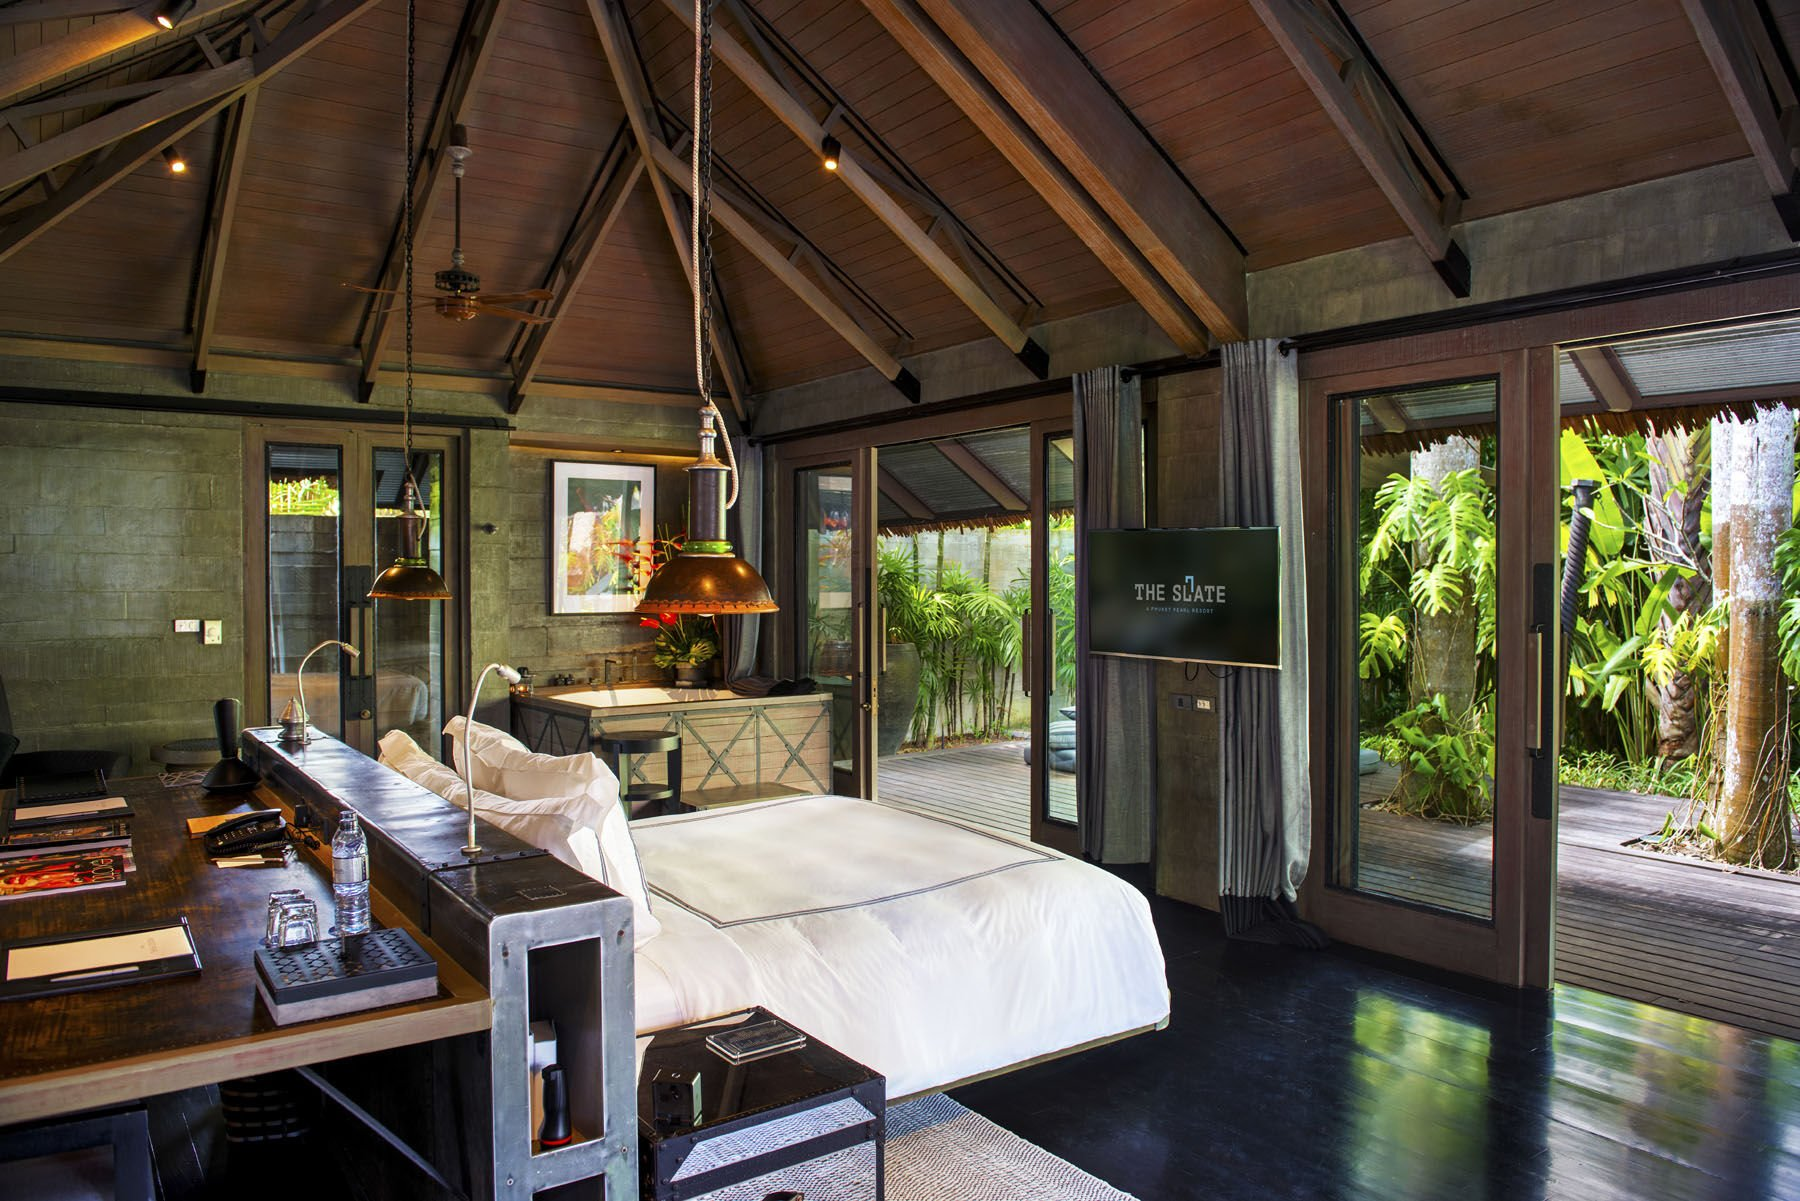 The Slate - one of the best luxury hotels